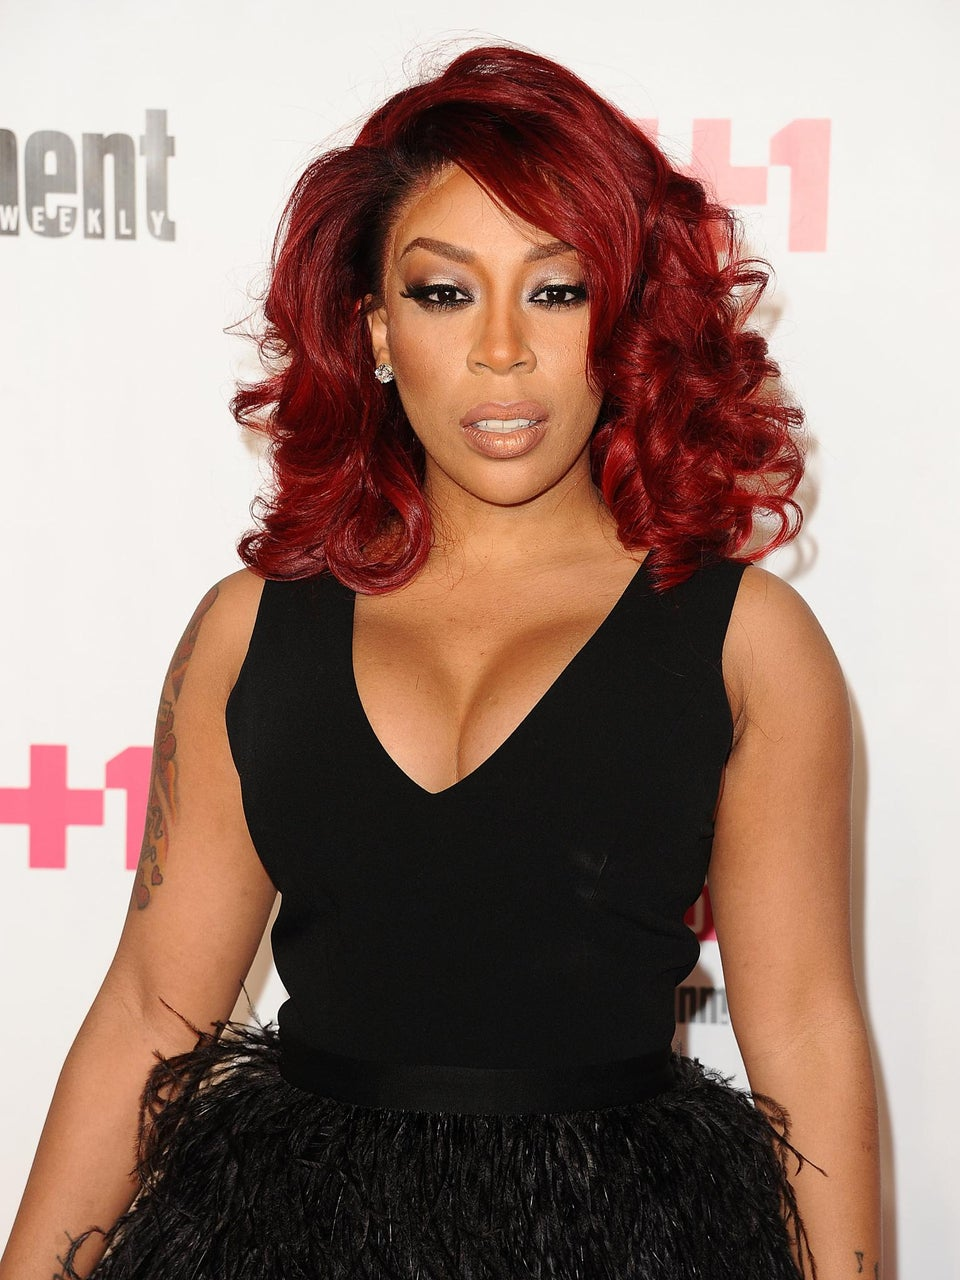 K.Michelle: It's Hard for People to Embrace Me As a Victim Because I'm So Outspoken